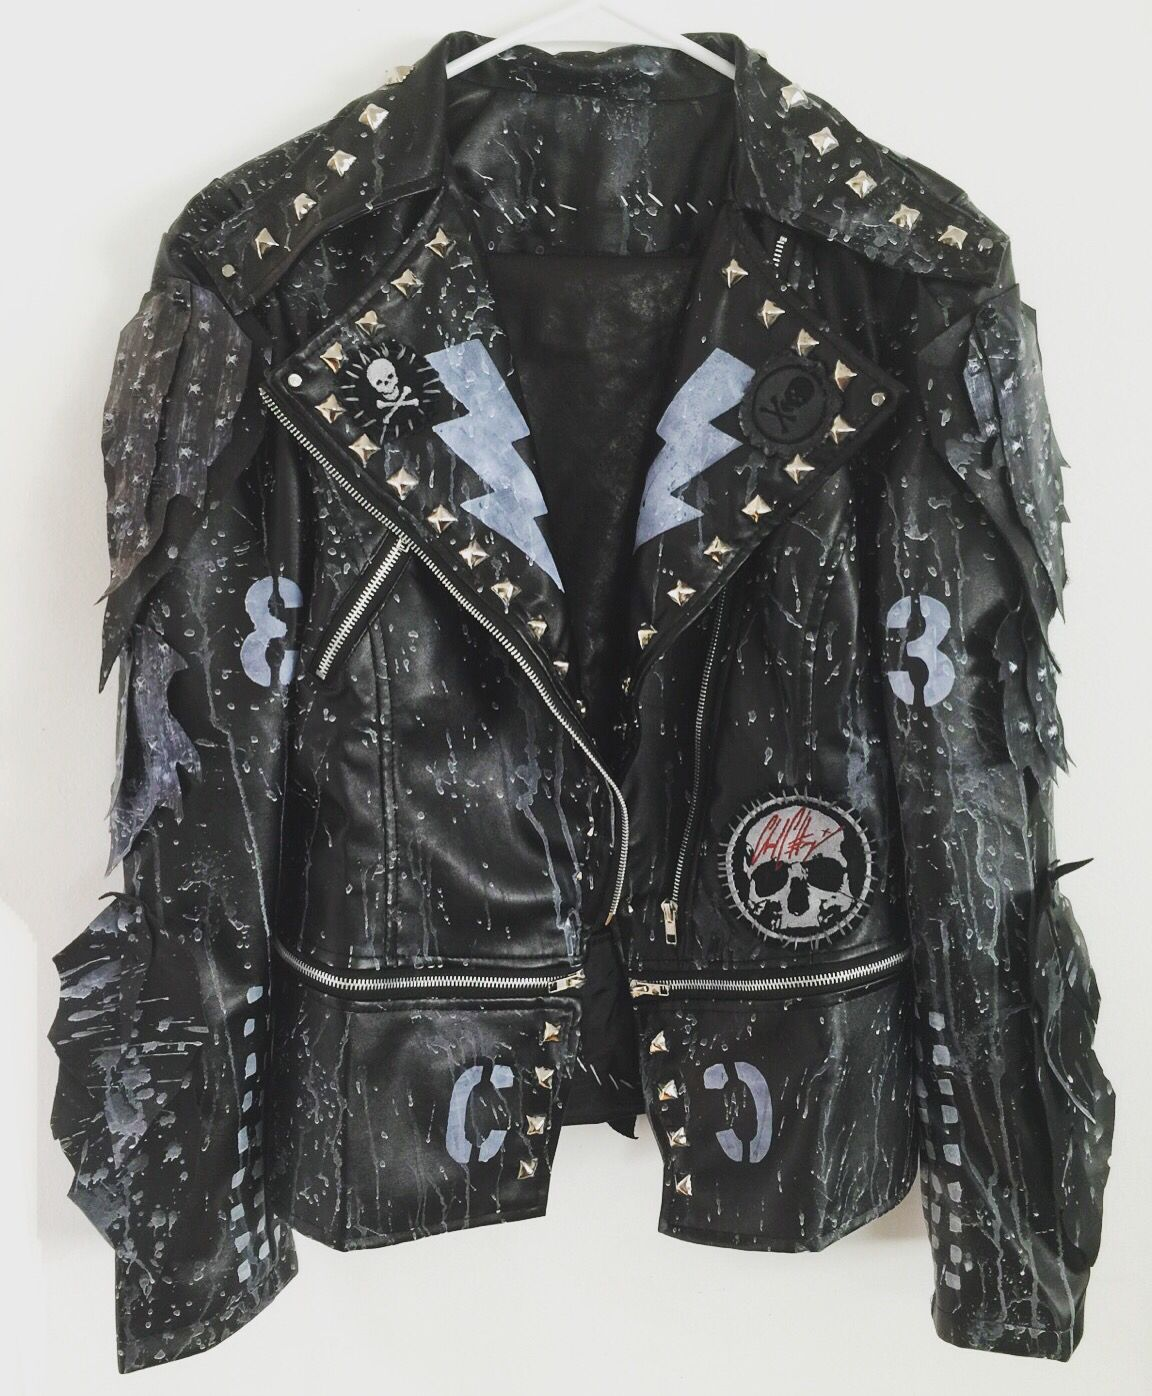 Rocker Jackets from Chad Cherry Clothing Punk Rock